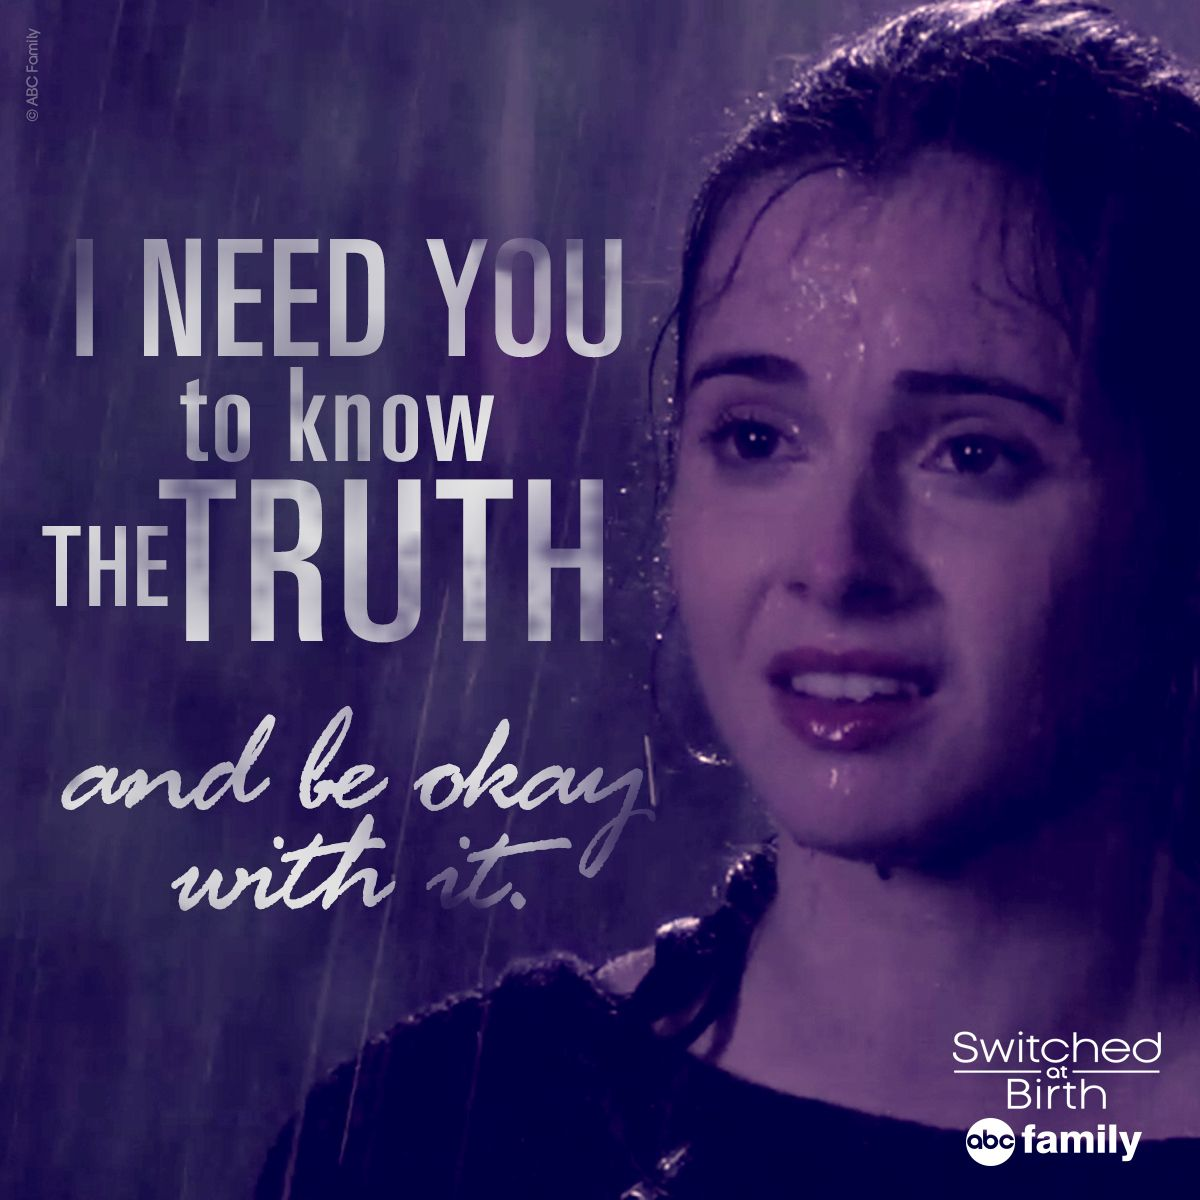 """""""I need you to know the truth and be okay with it."""" - Bay 